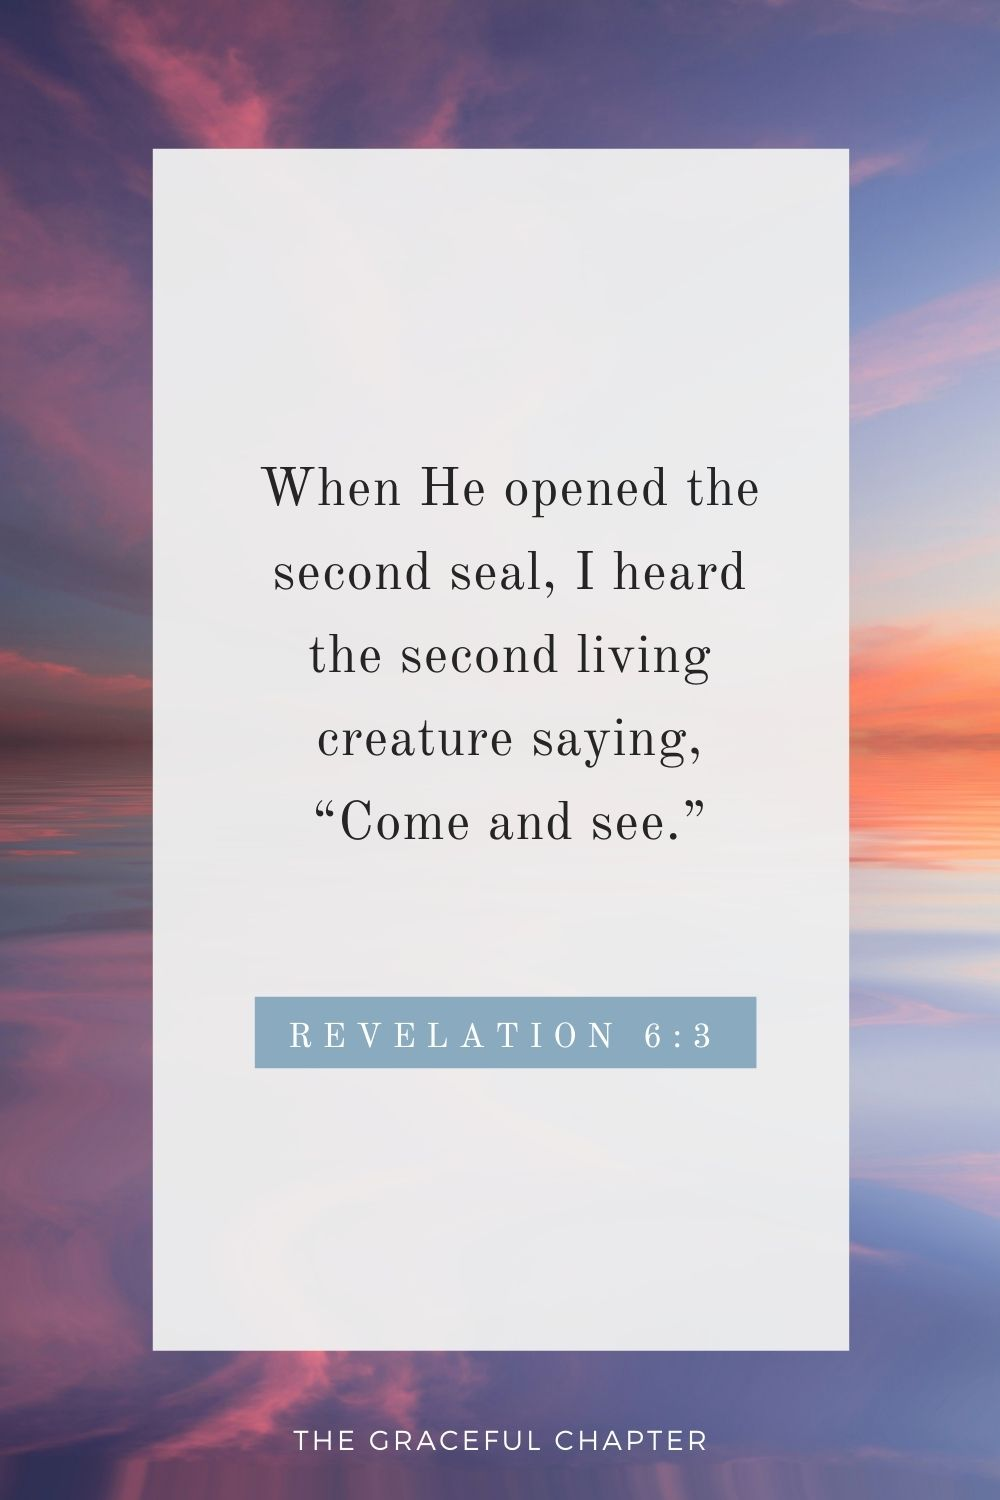 """When He opened the second seal, I heard the second living creature saying, """"Come and see."""" Revelation 6:3"""